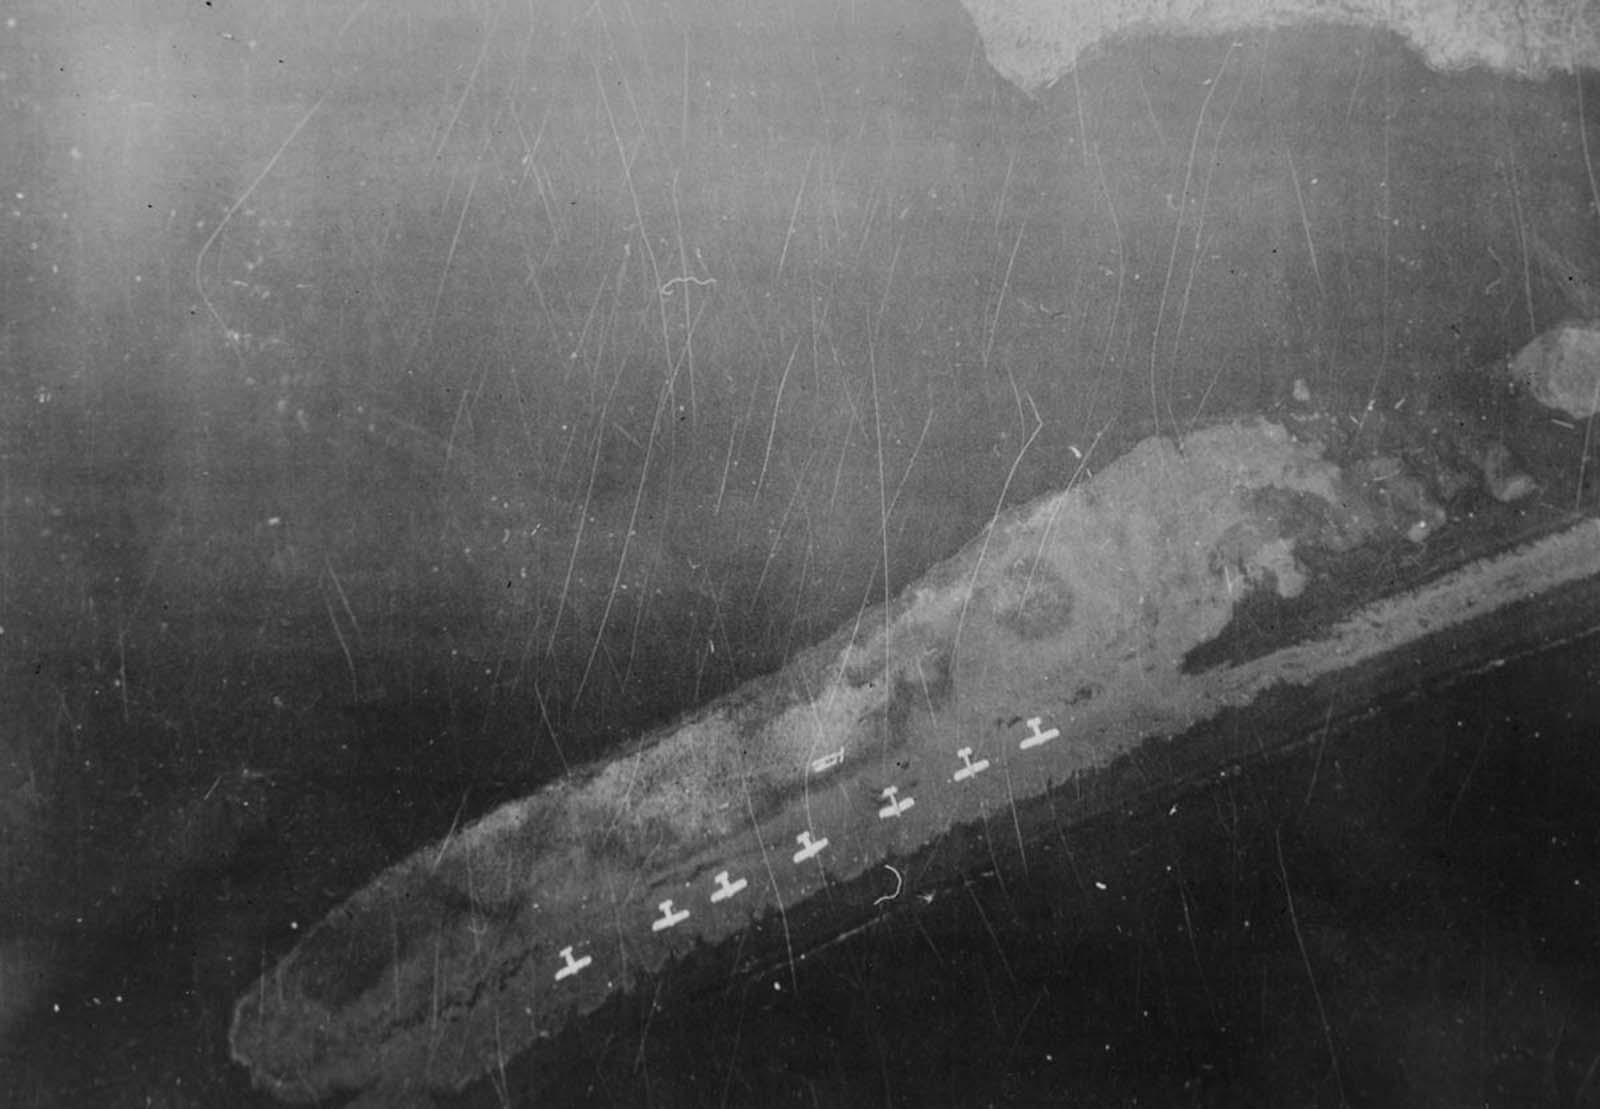 Decoy aircraft are laid out by occupying Japanese forces on a shoreline on Kiska Island on June 18, 1942.